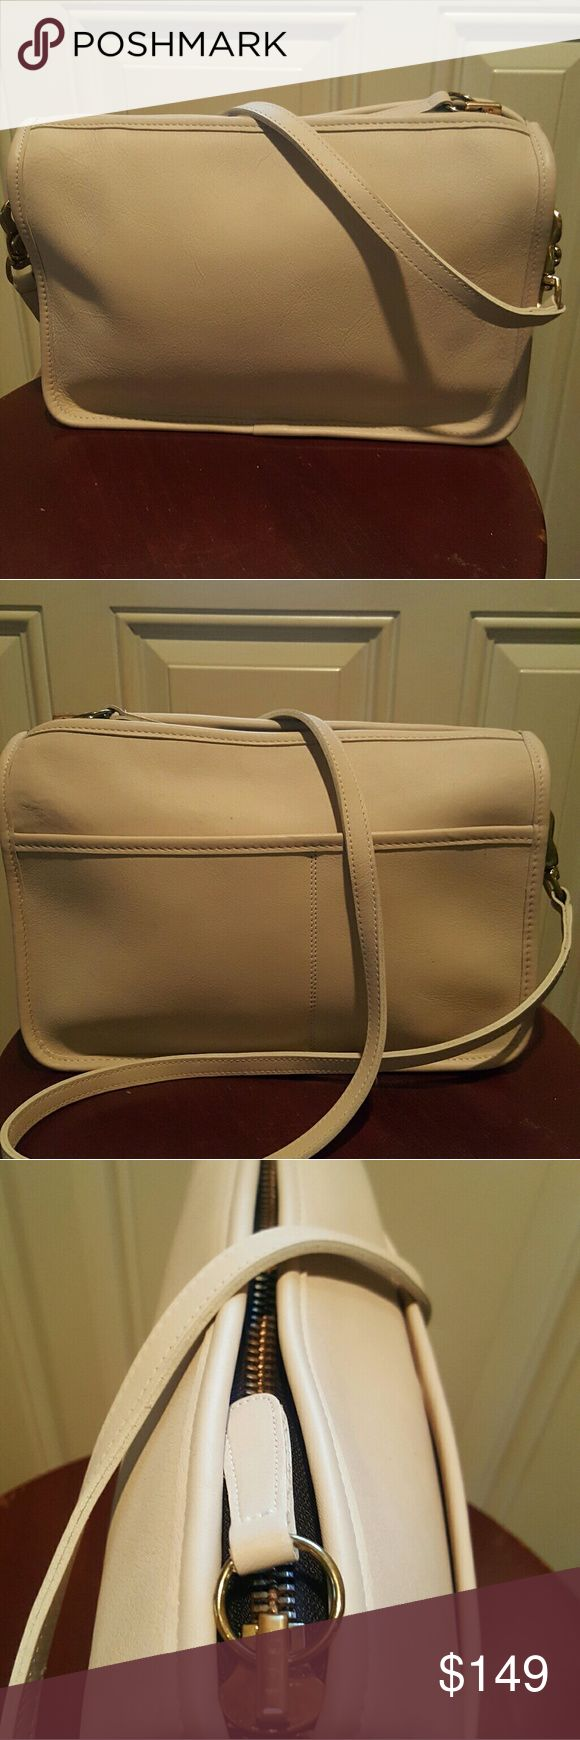 Vintage coach  leather crossbody handbag Vintage Made in USA rare ivory cream leather excellent condition. Coach Bags Crossbody Bags